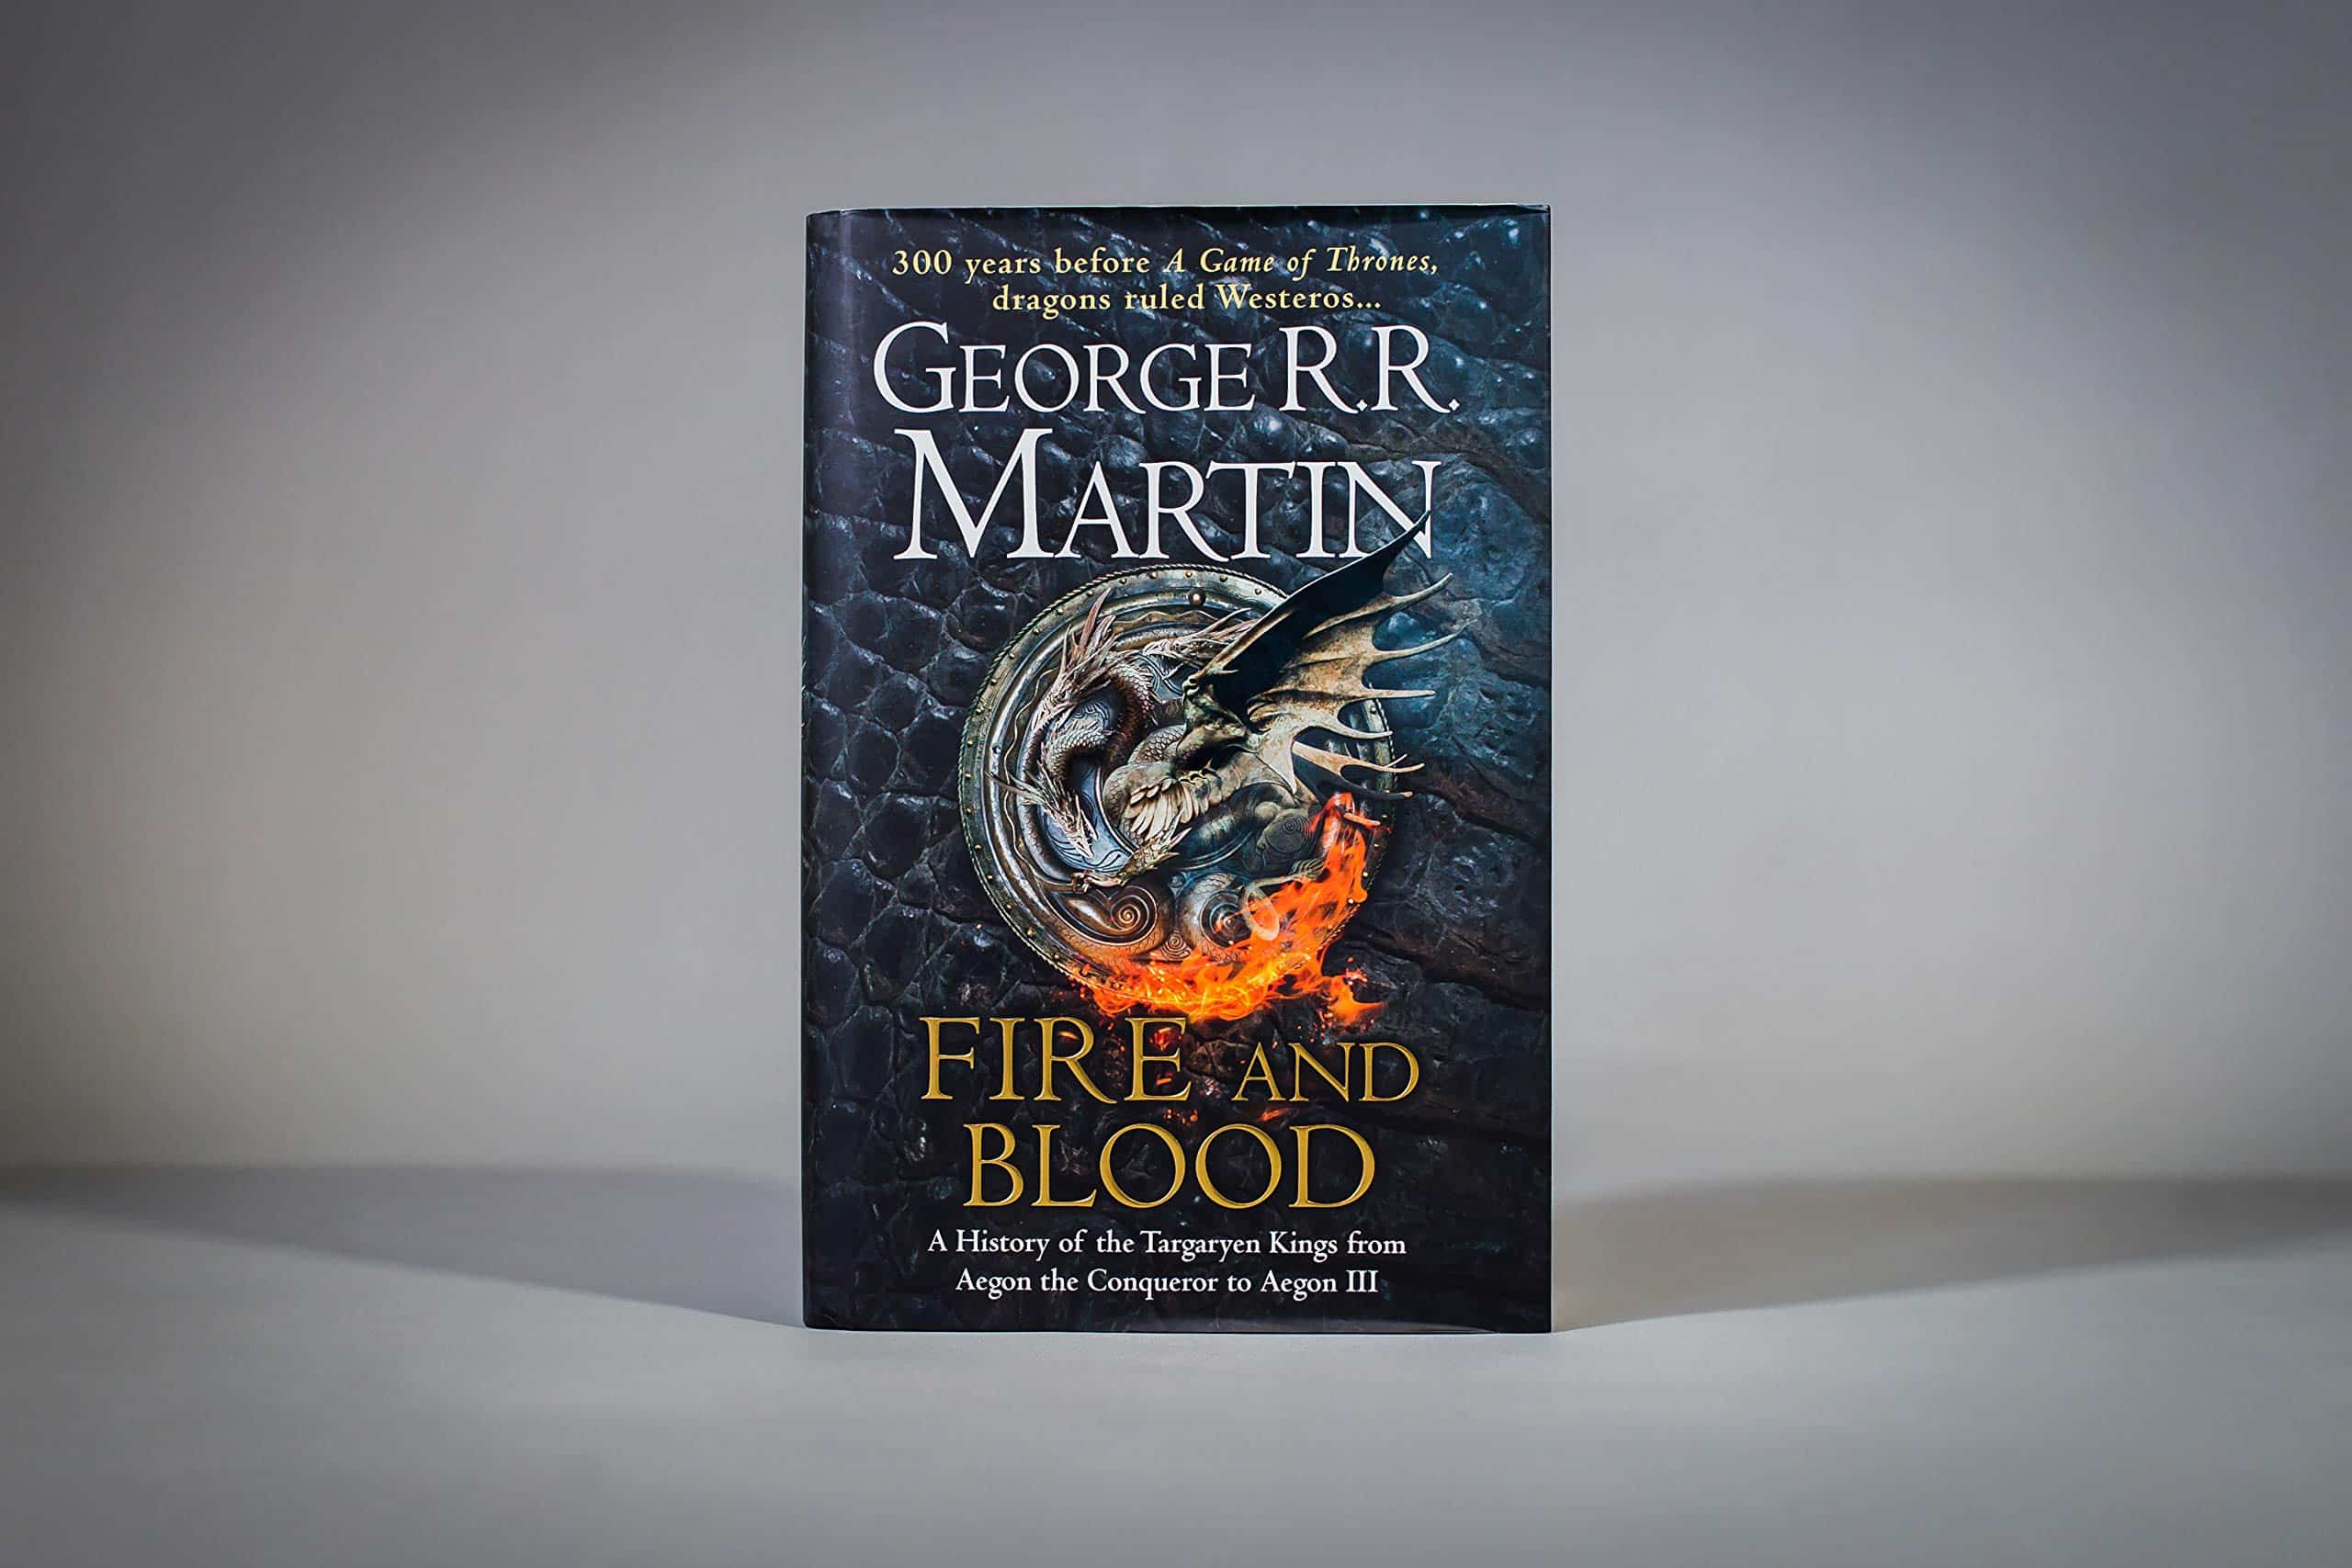 Fire And Blood: A History Of The Targaryen Kings From Aegon The Conqueror To Aegon III